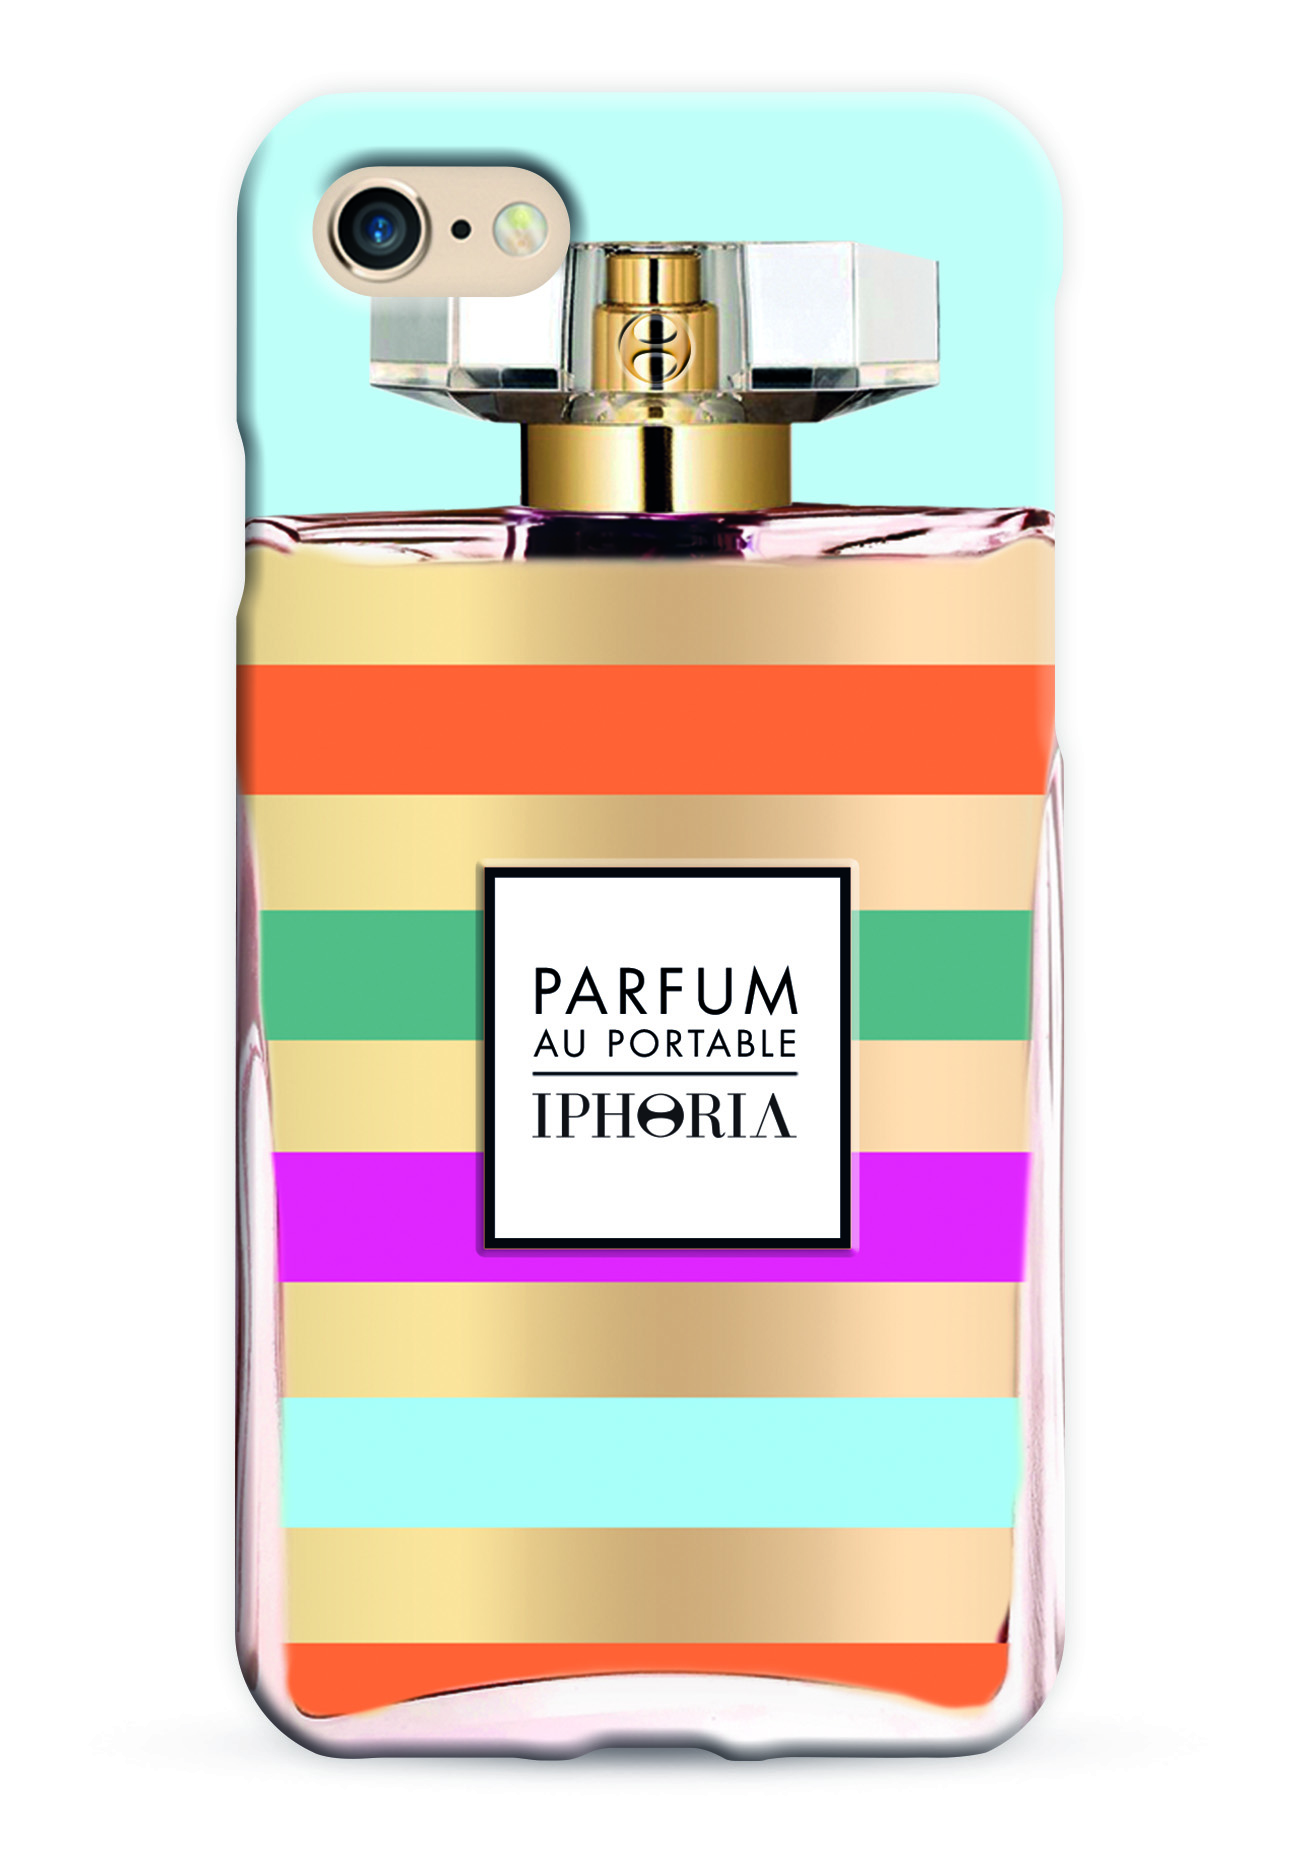 perfume case with mulitcolour stripes for iphone 7 cases iphoria. Black Bedroom Furniture Sets. Home Design Ideas